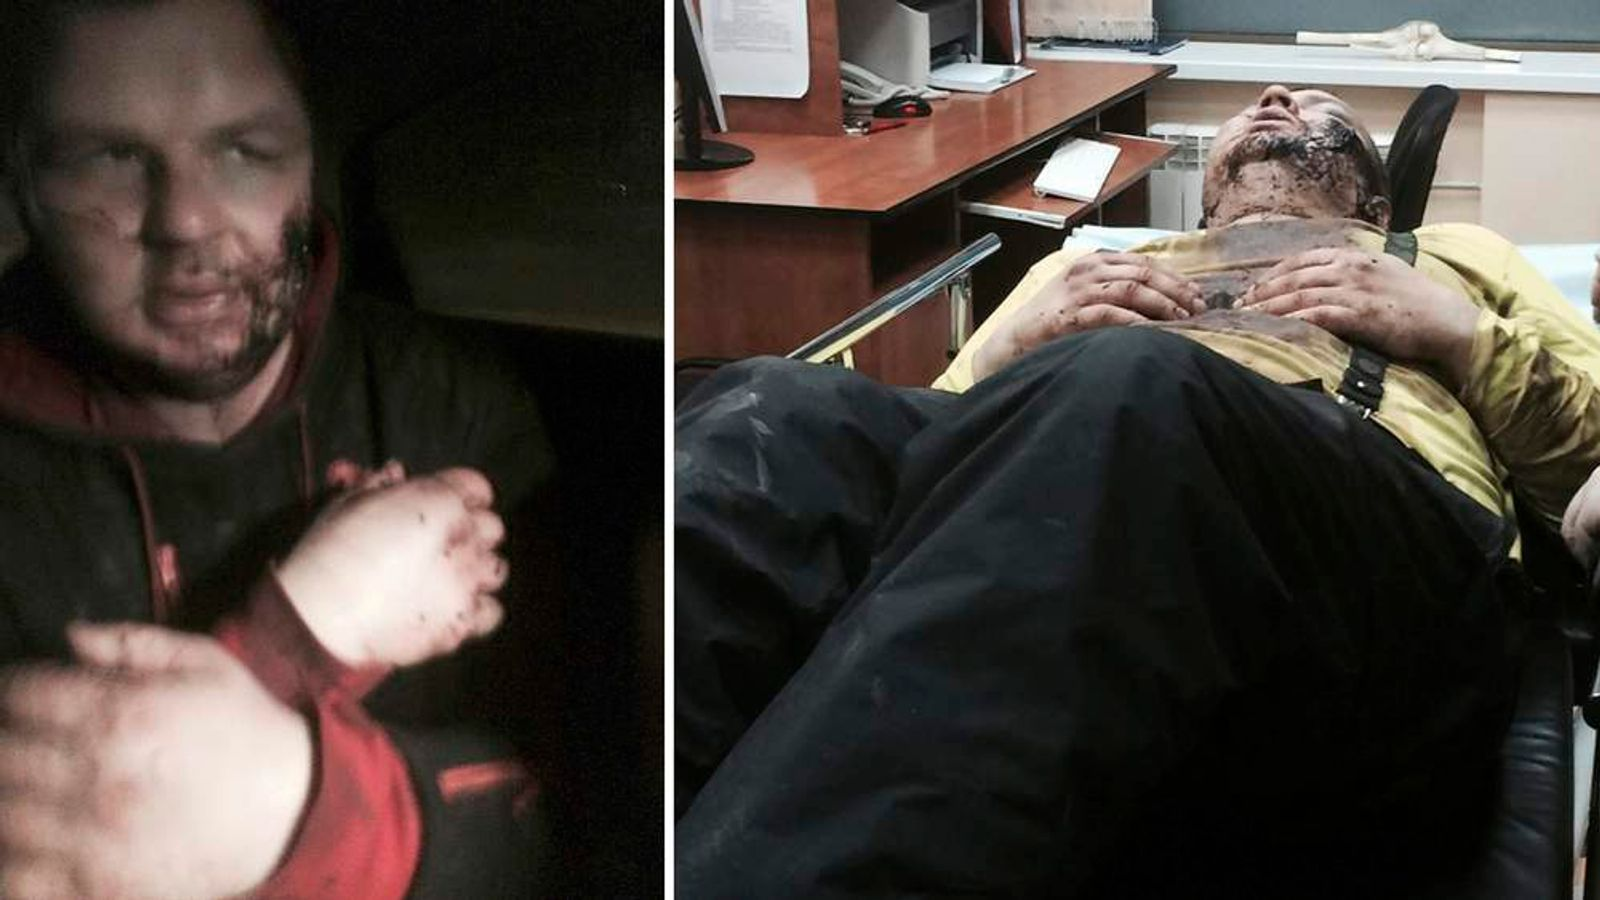 Bulatov, 35, one of the leaders of anti-government protest motorcades called 'Automaidan', is treated in hospital in Kiev